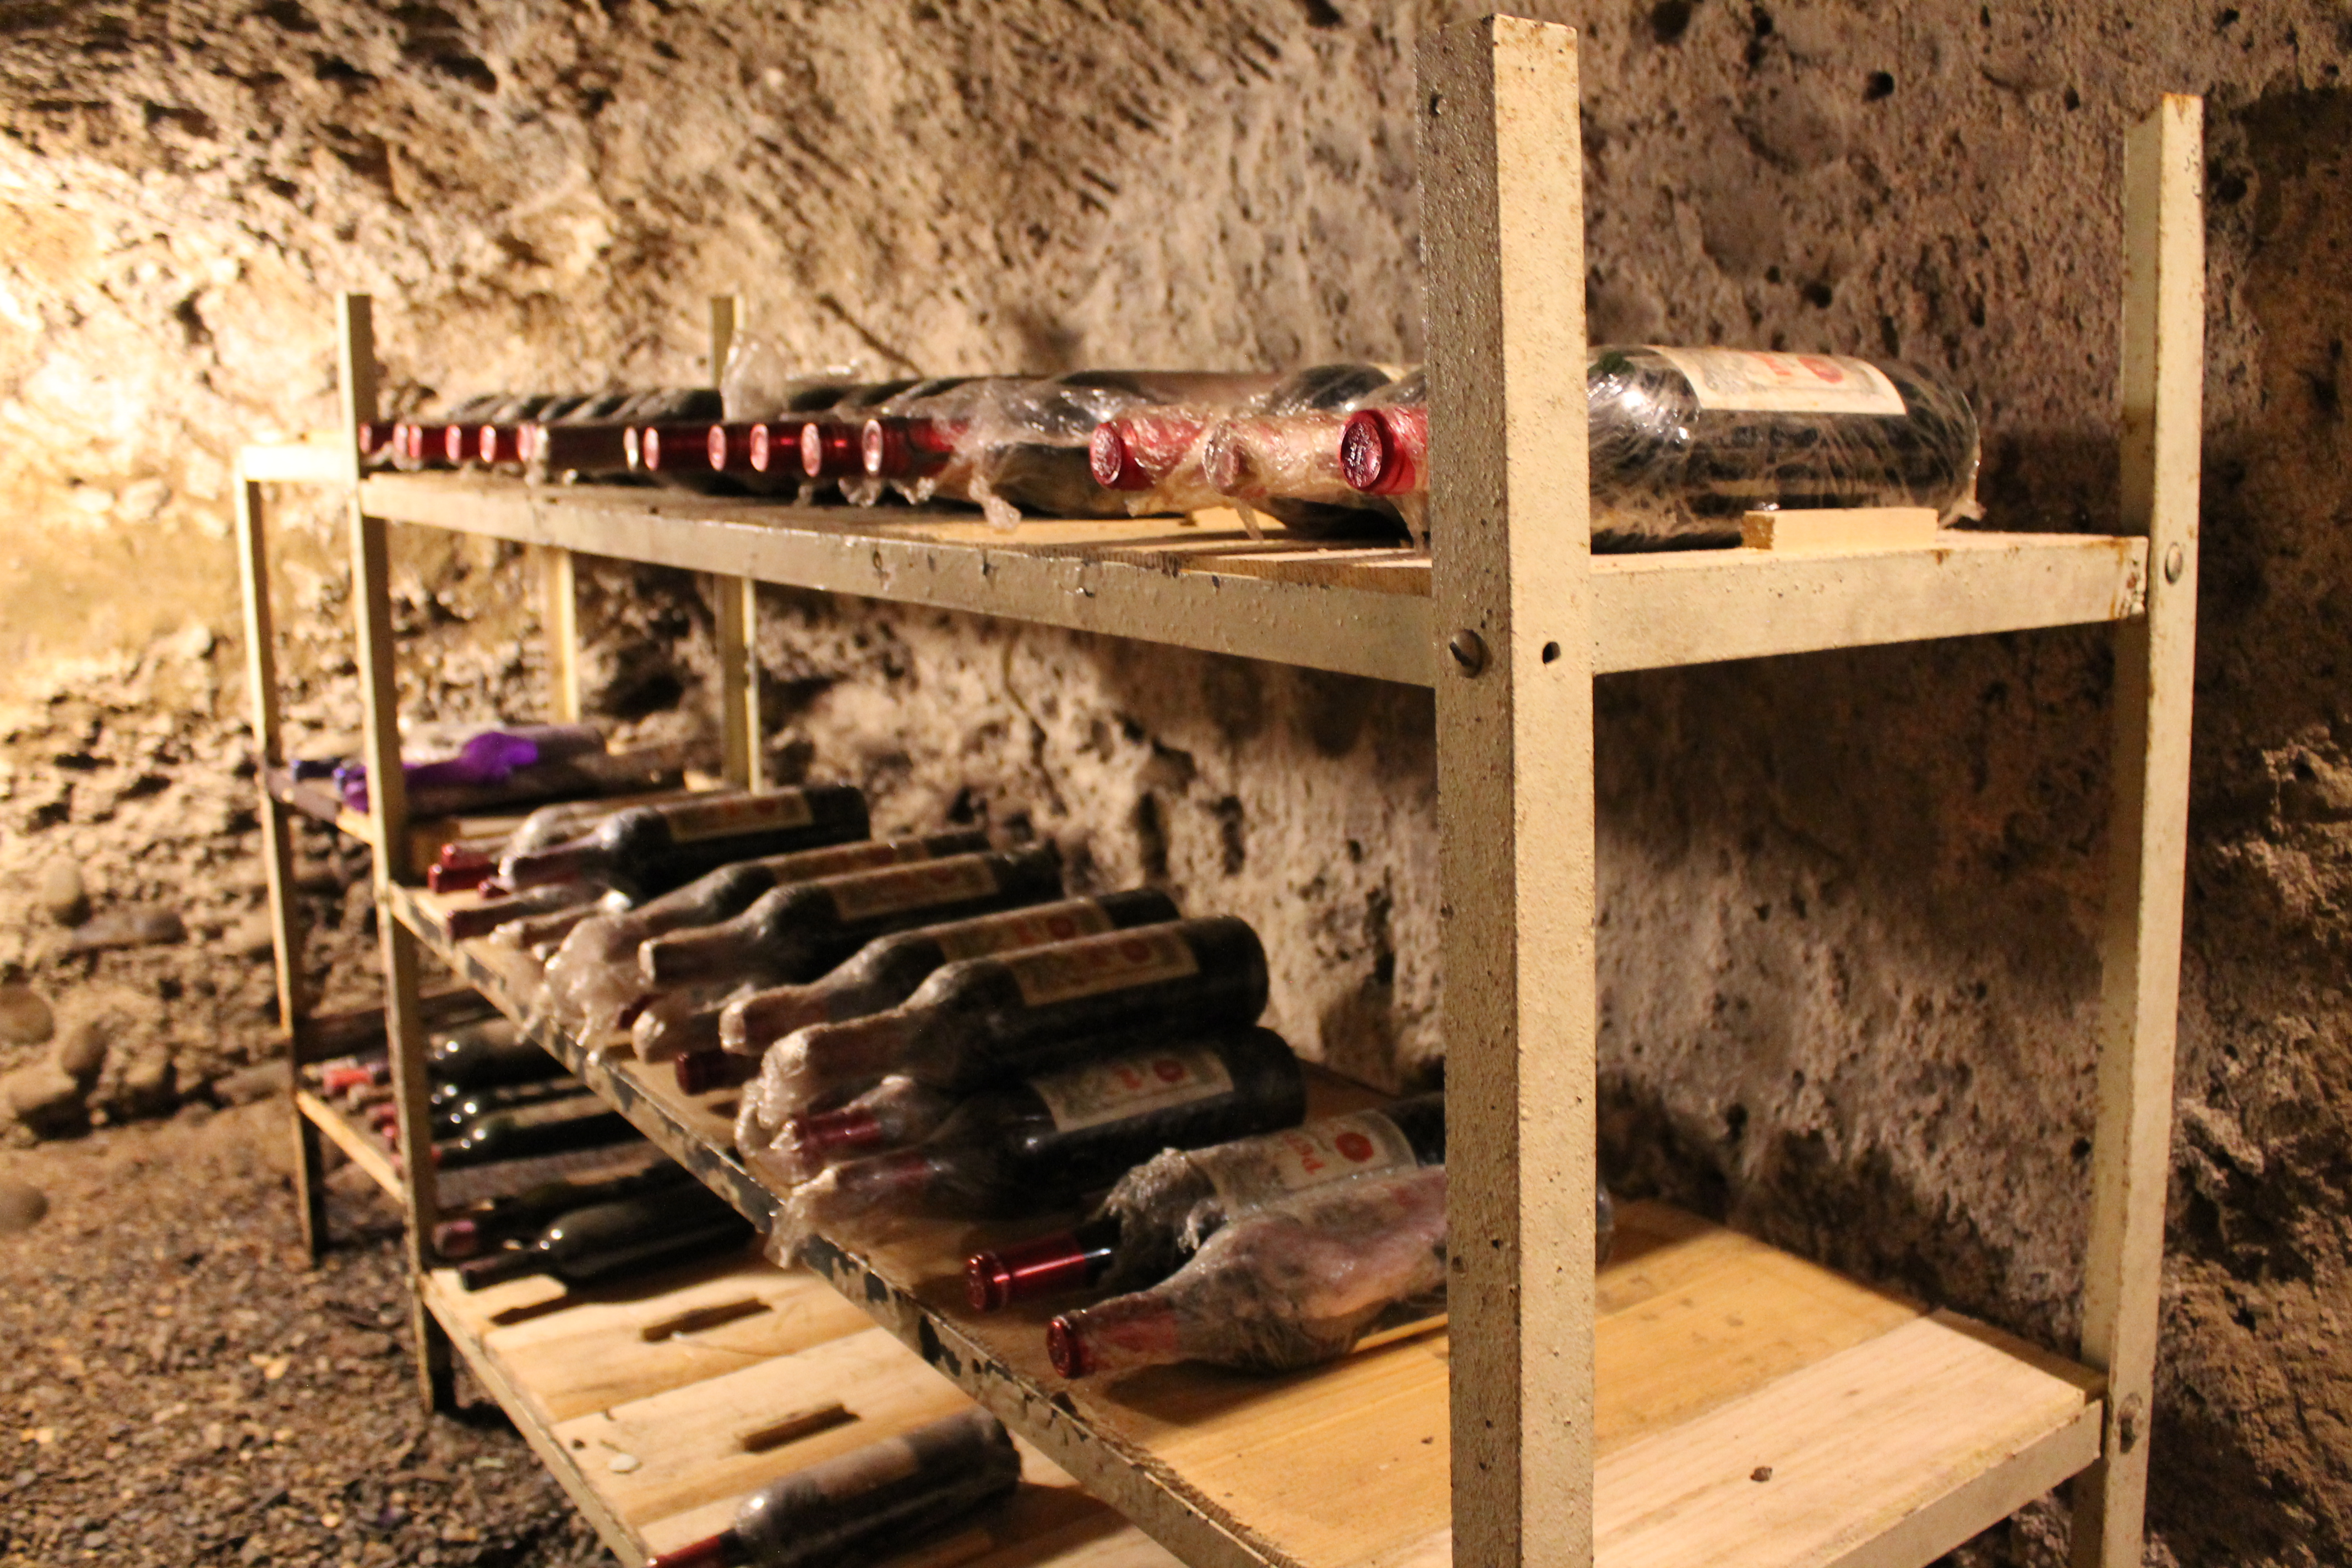 wine-cellar-provence-france-lustforthesublime